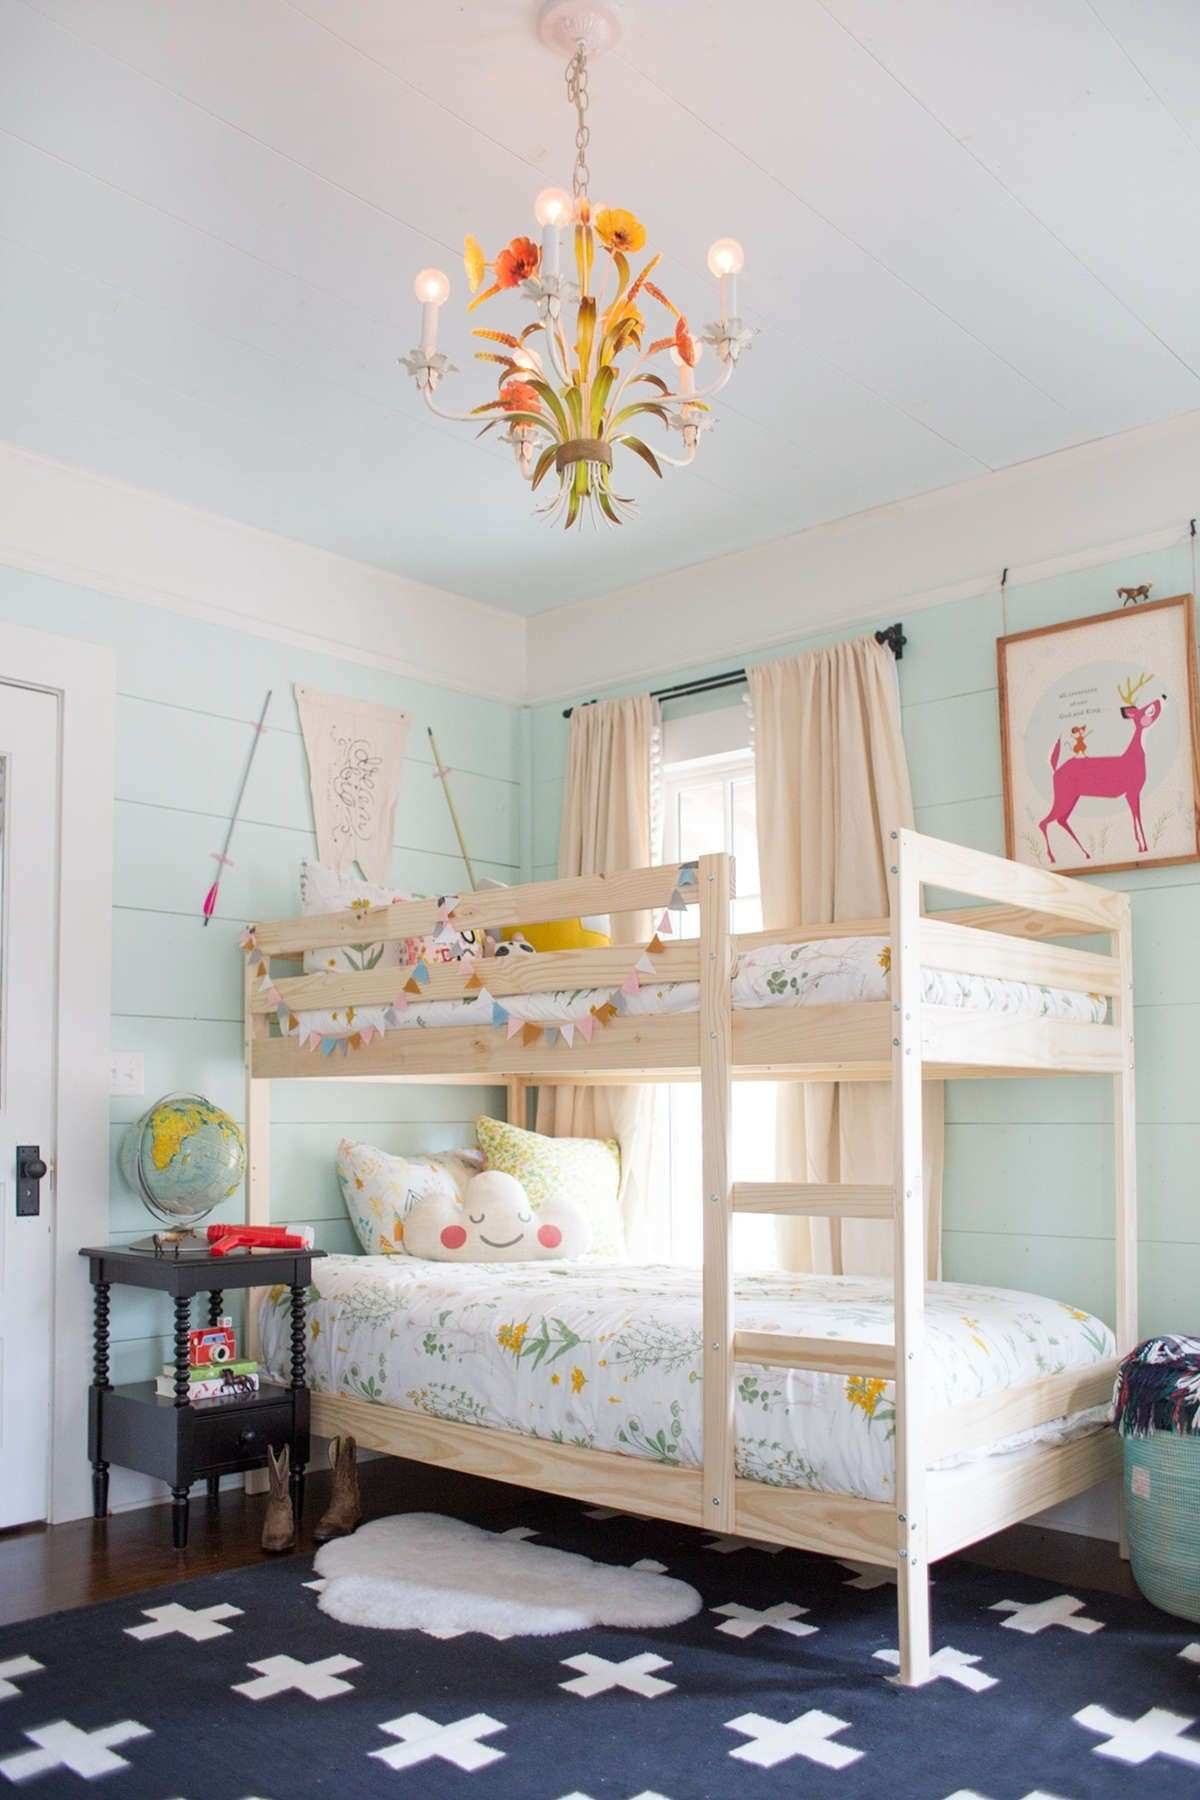 Kids Bedroom Set Awesome d Room for Two Kids A Baby Pinterest